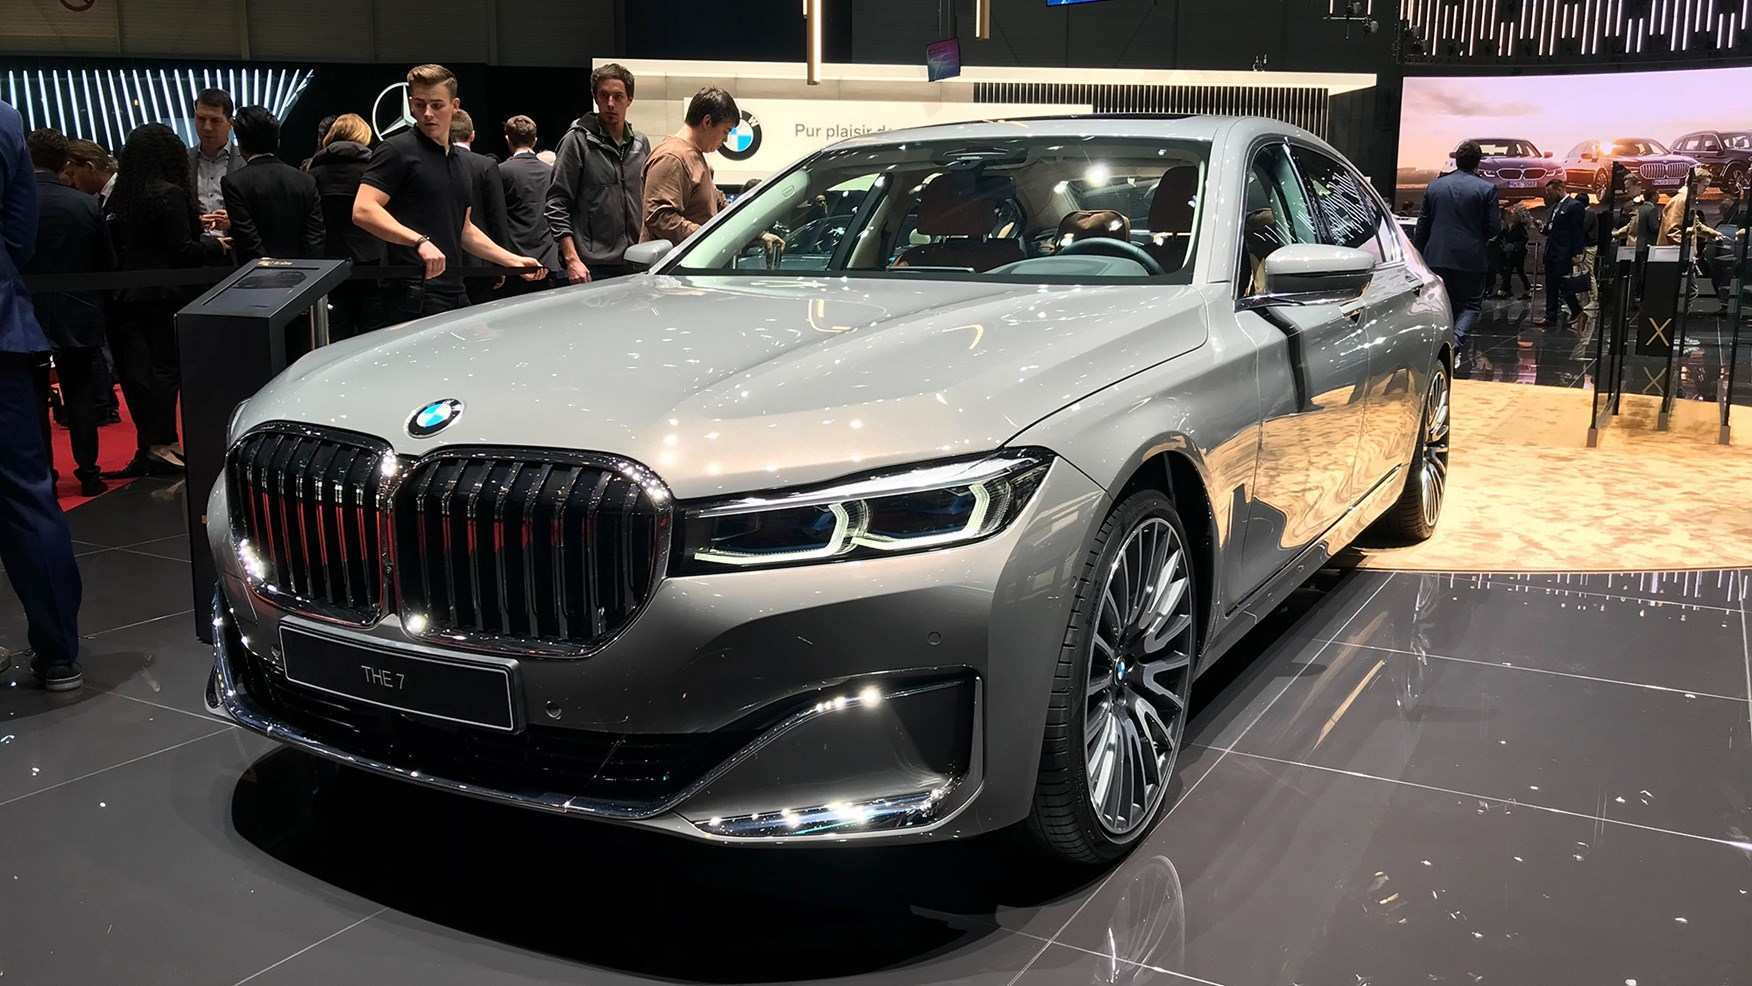 70 The Best 2019 BMW 750Li Xdrive Specs And Review